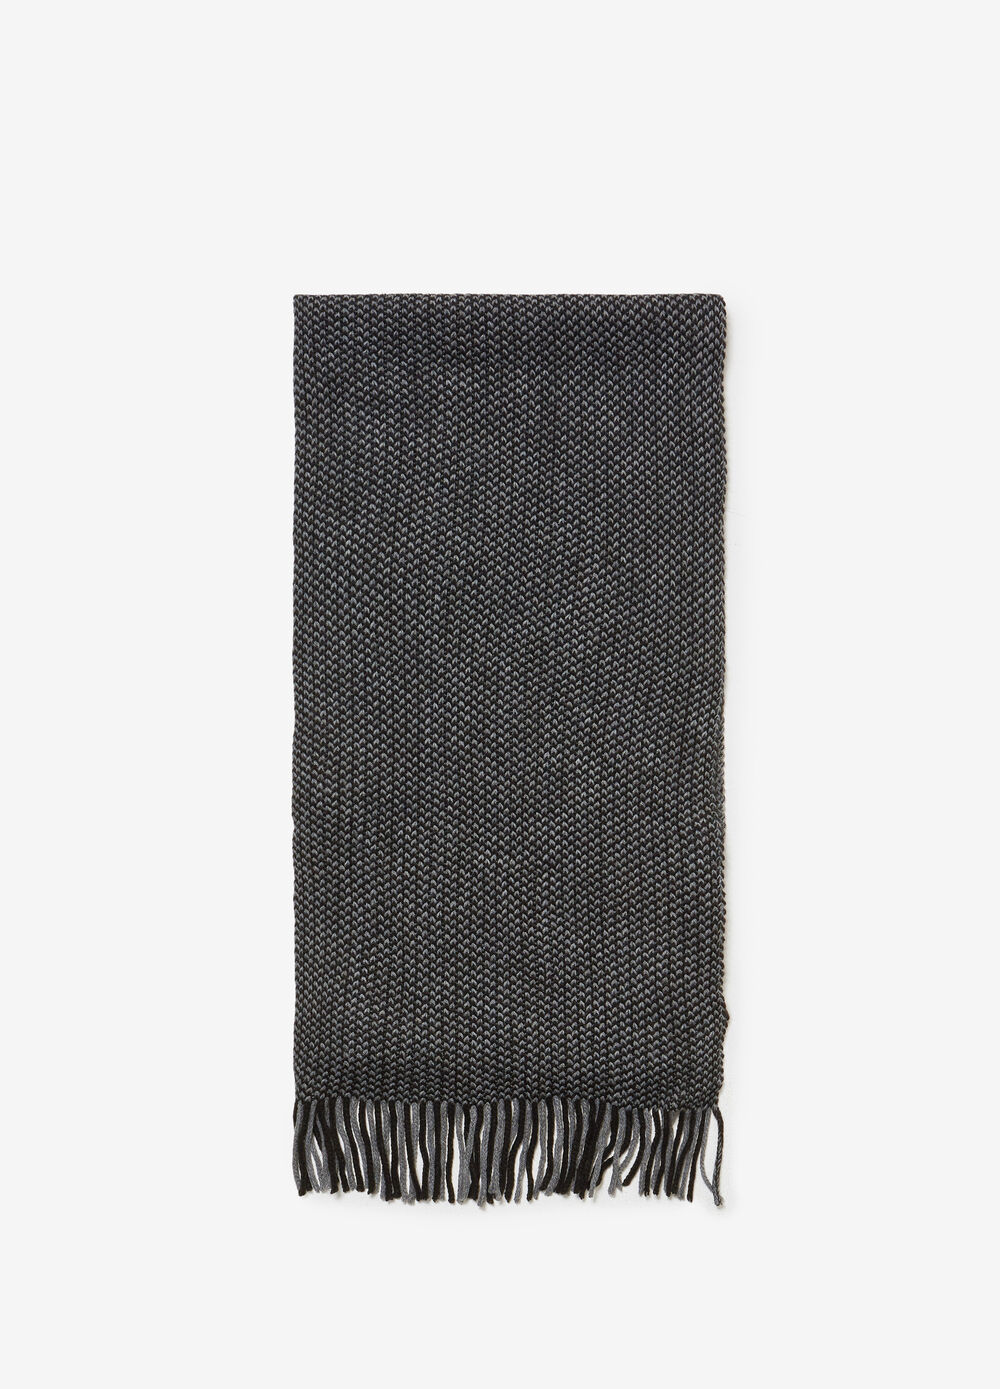 Jacquard scarf with braided weave